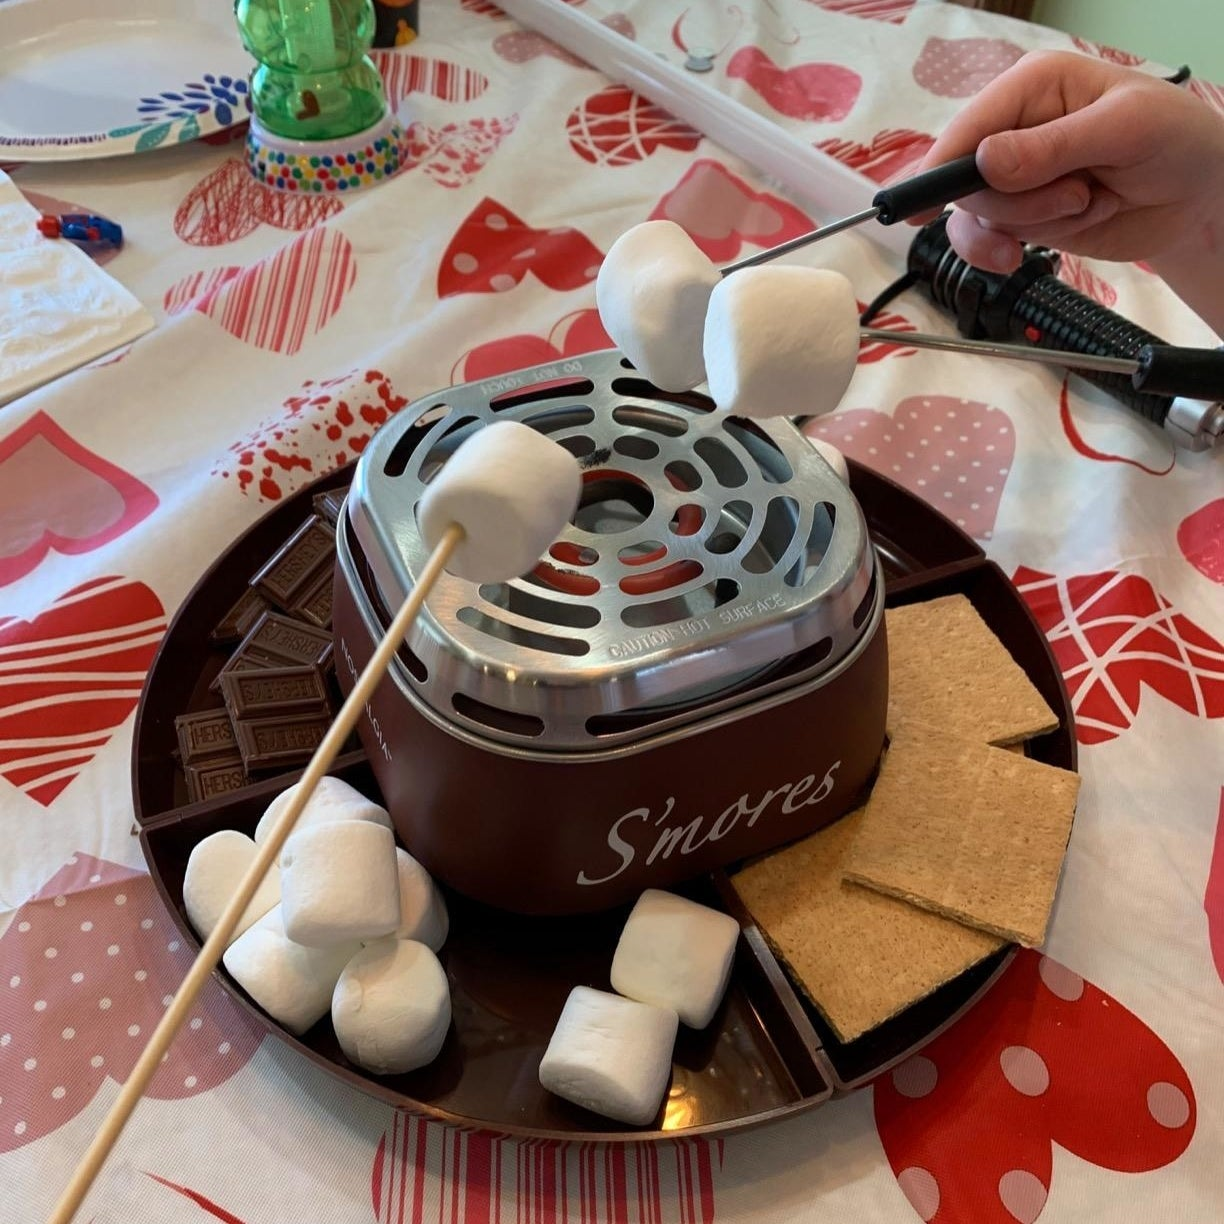 A reviewer's s'mores maker in use with marshmallows, chocolate, and graham crackers in the tray